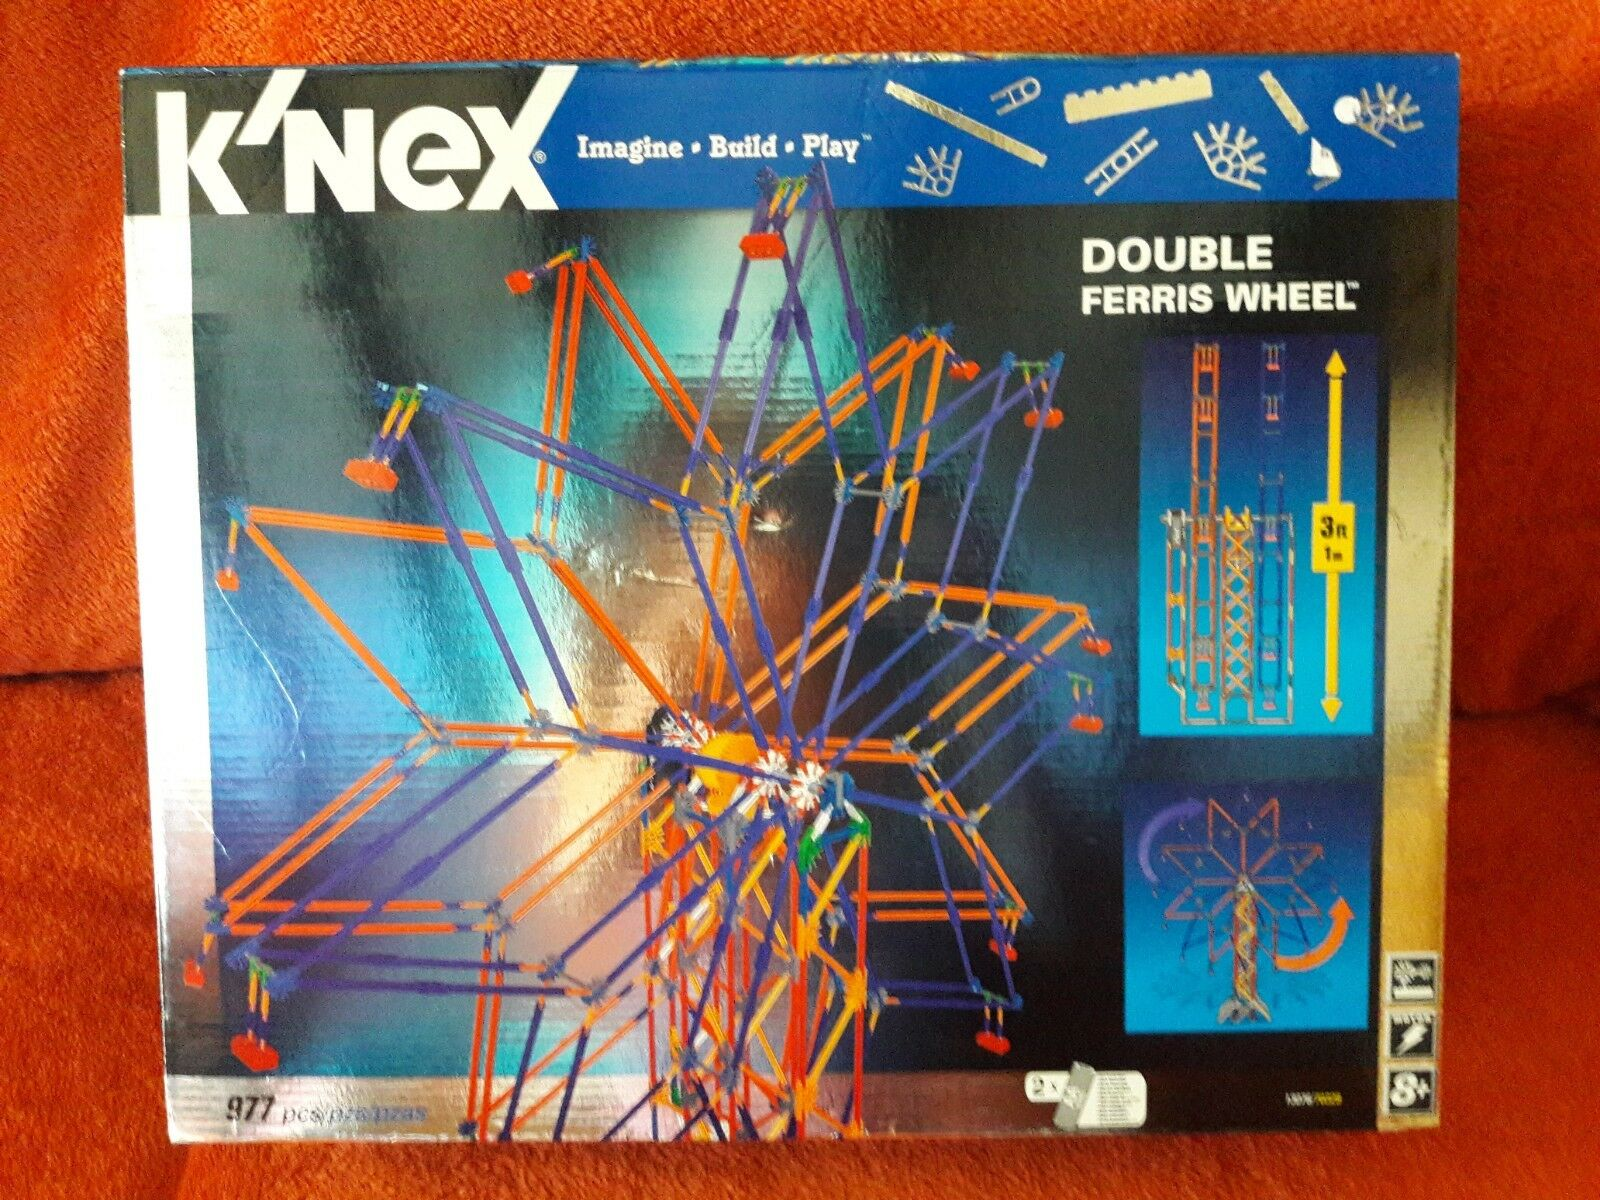 K'NEX DOUBLE FERRIS WHEEL  new MOTORIZED 3FT TALL 977 pieces model 13076 70329